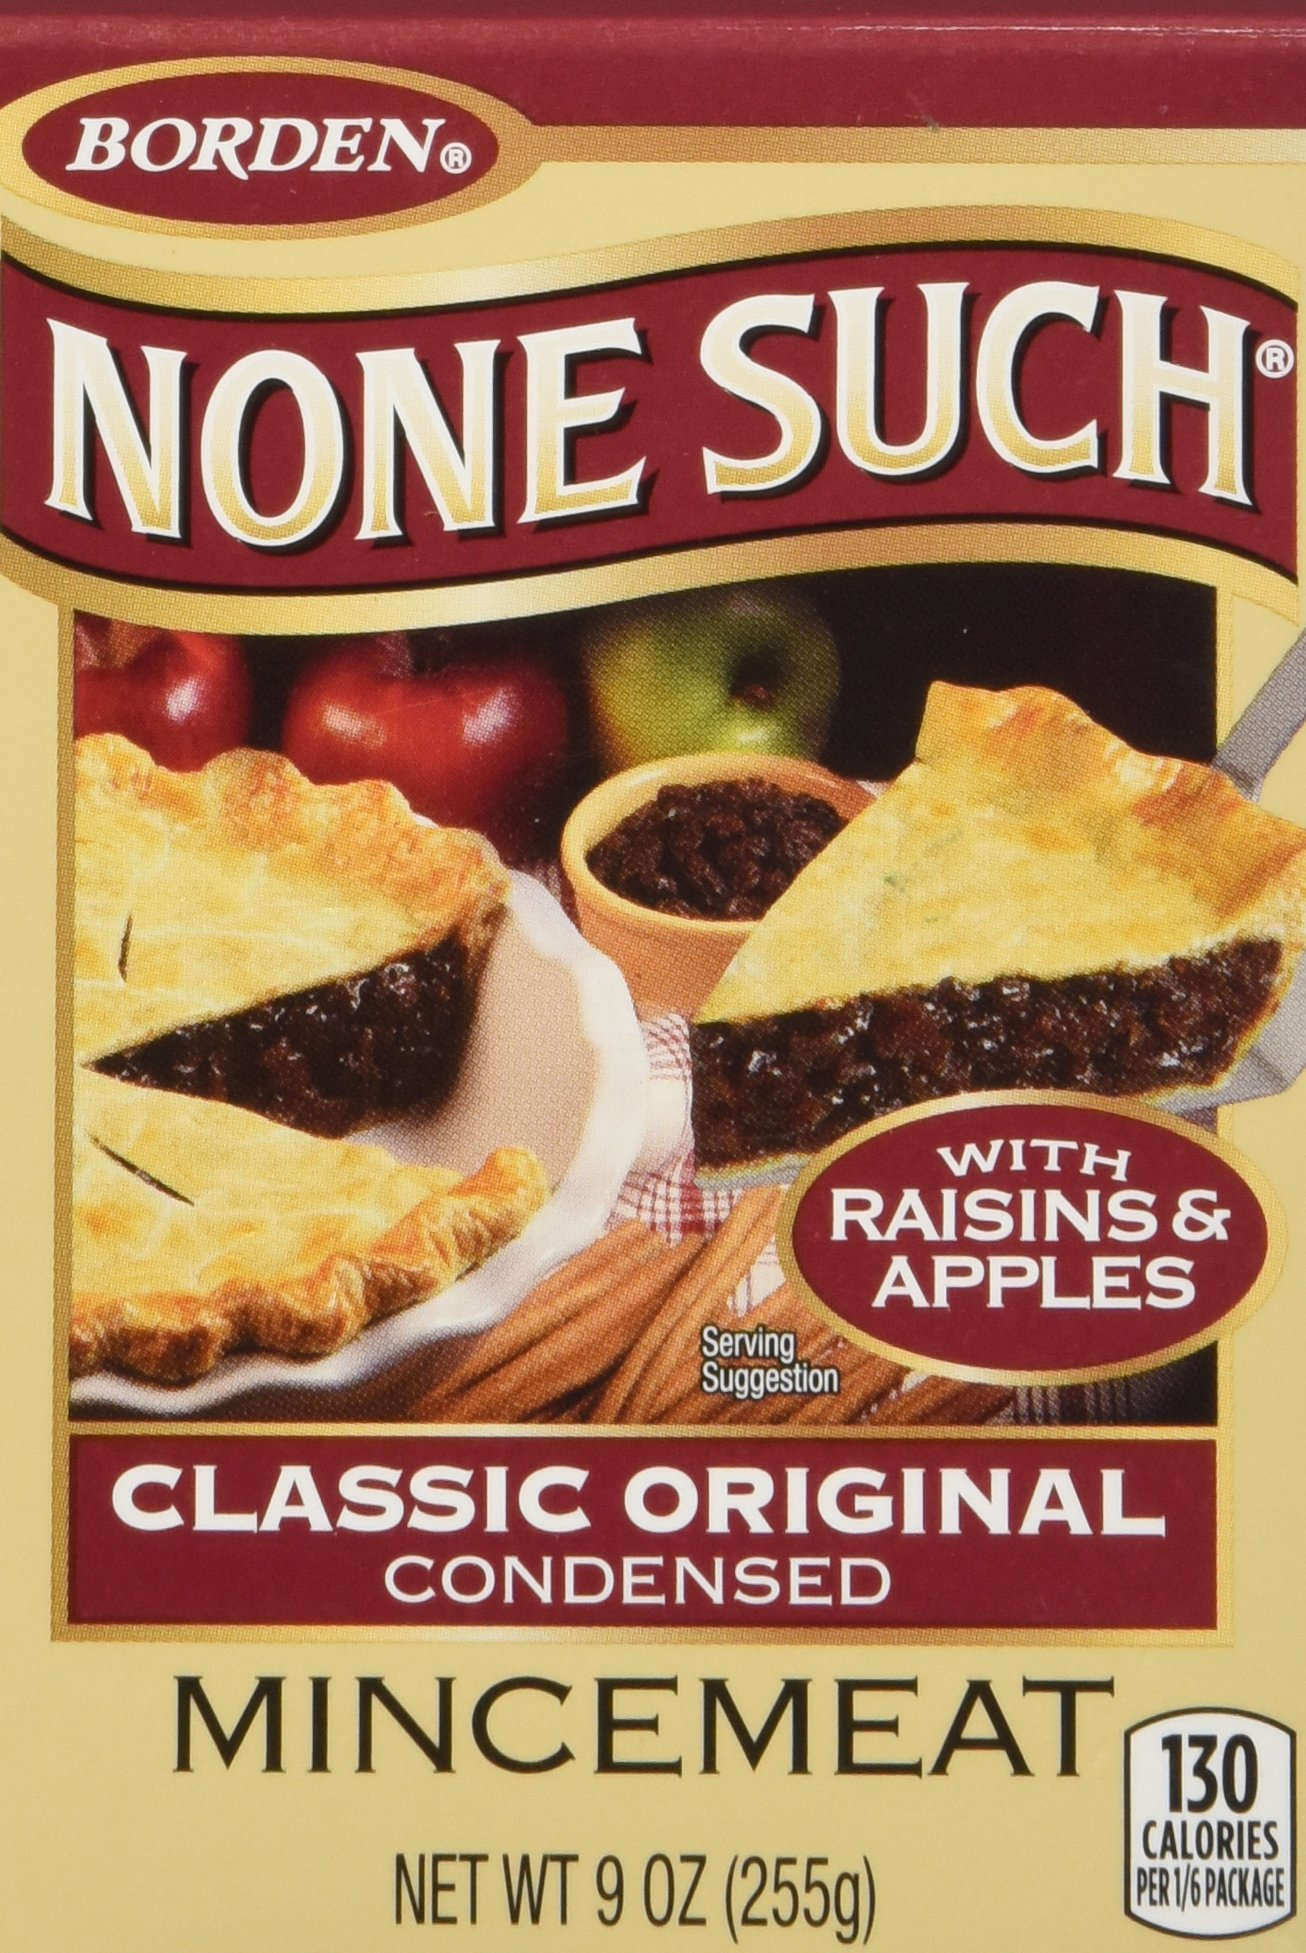 Borden None Such Condensed Mincemeat, Apples and Raisins, 9-ounce Box - Pack of 4 Boxes by Borden